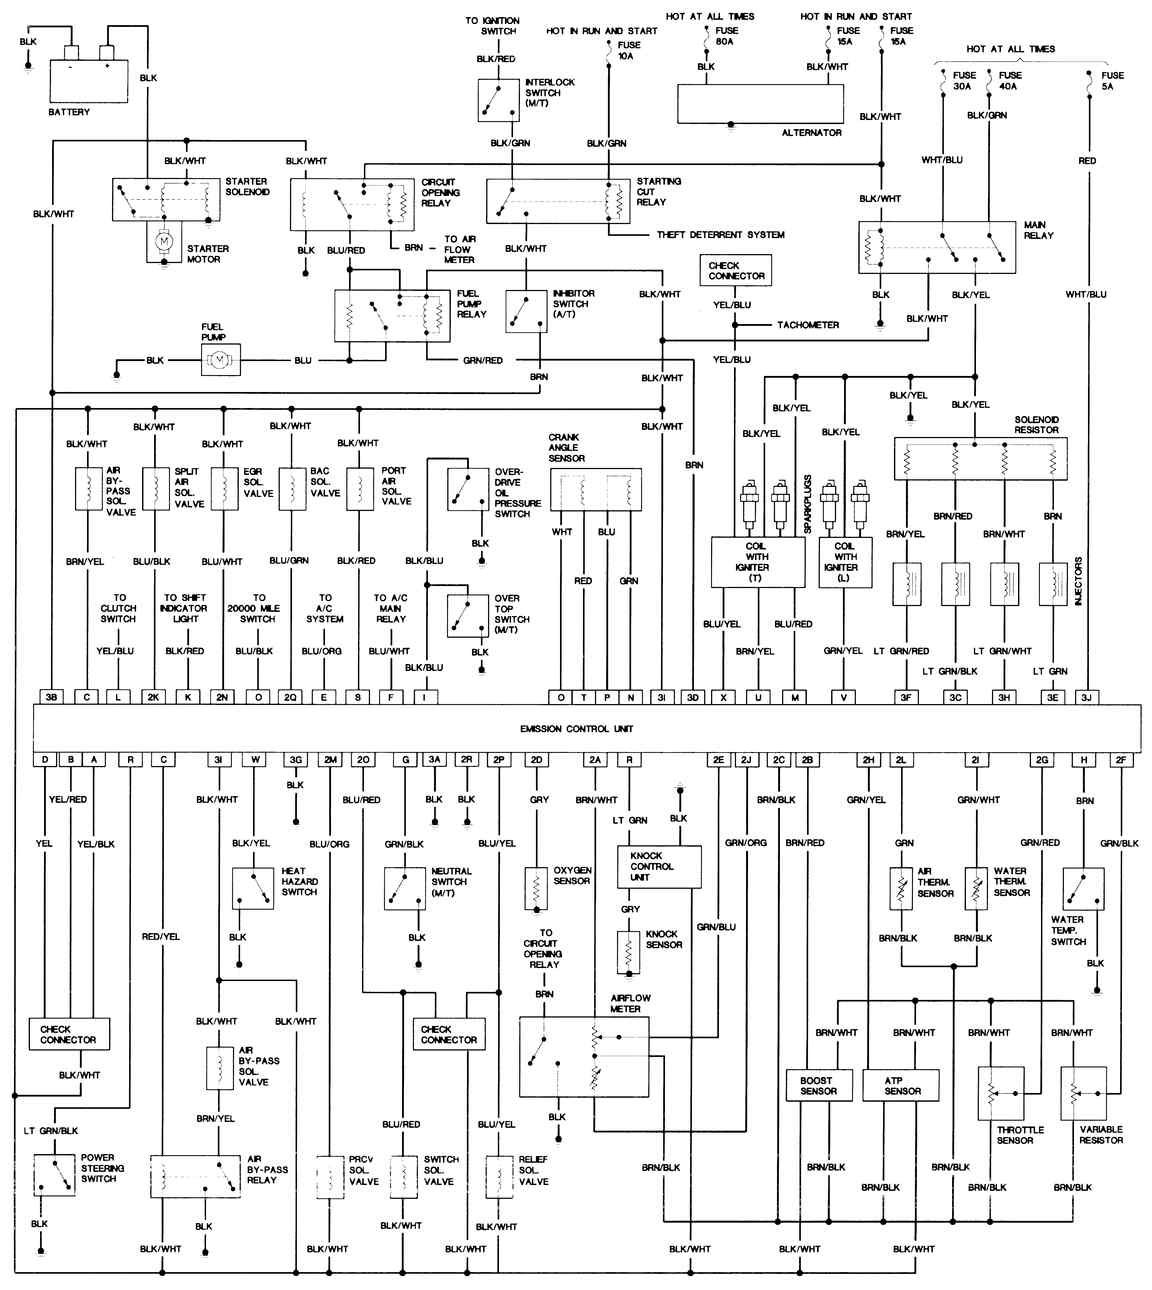 85816143l wiring diagrams 1980 mazda rx7 wiring diagram at creativeand.co